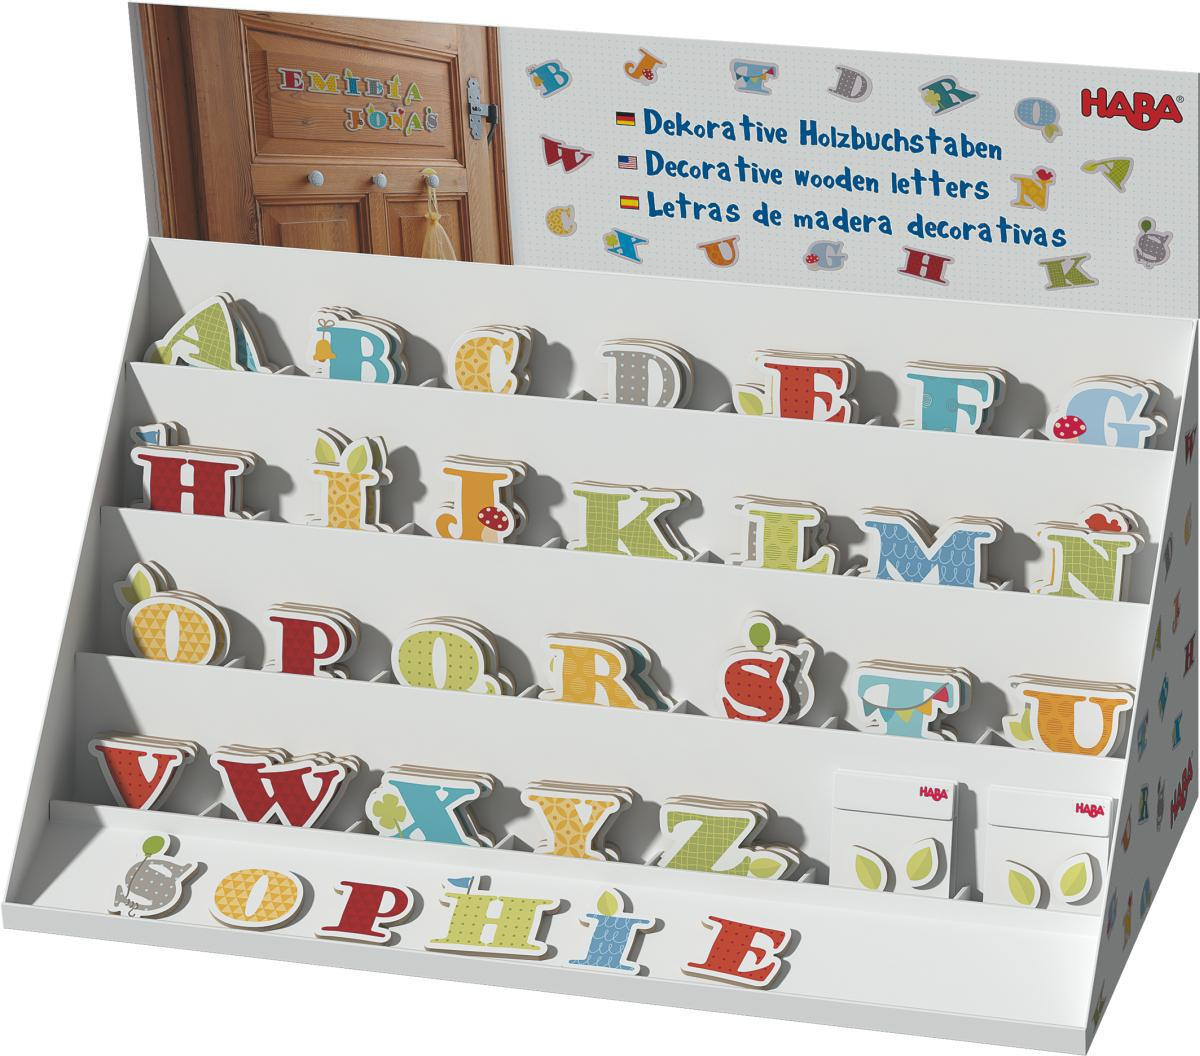 haba selection holzbuchstaben buchstabe kinderzimmerdekoration. Black Bedroom Furniture Sets. Home Design Ideas